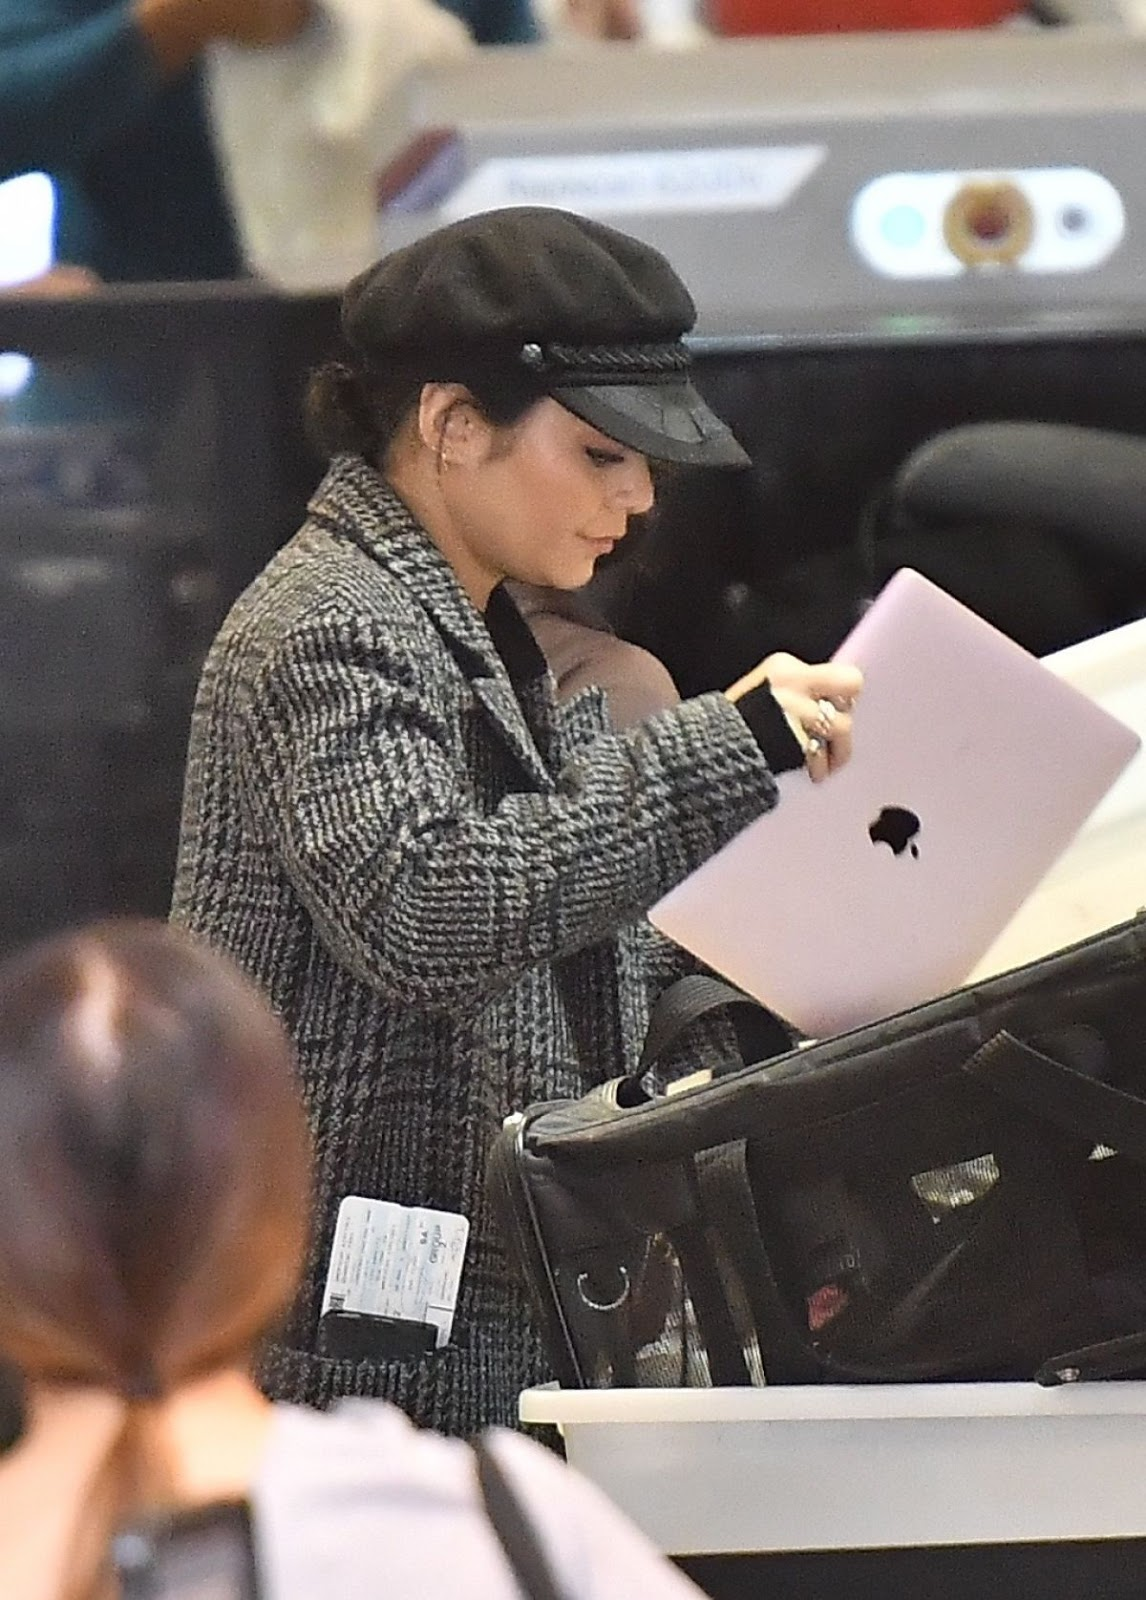 Photos of Vanessa Hudgens without makeup with her dog at Los Angeles International Airport